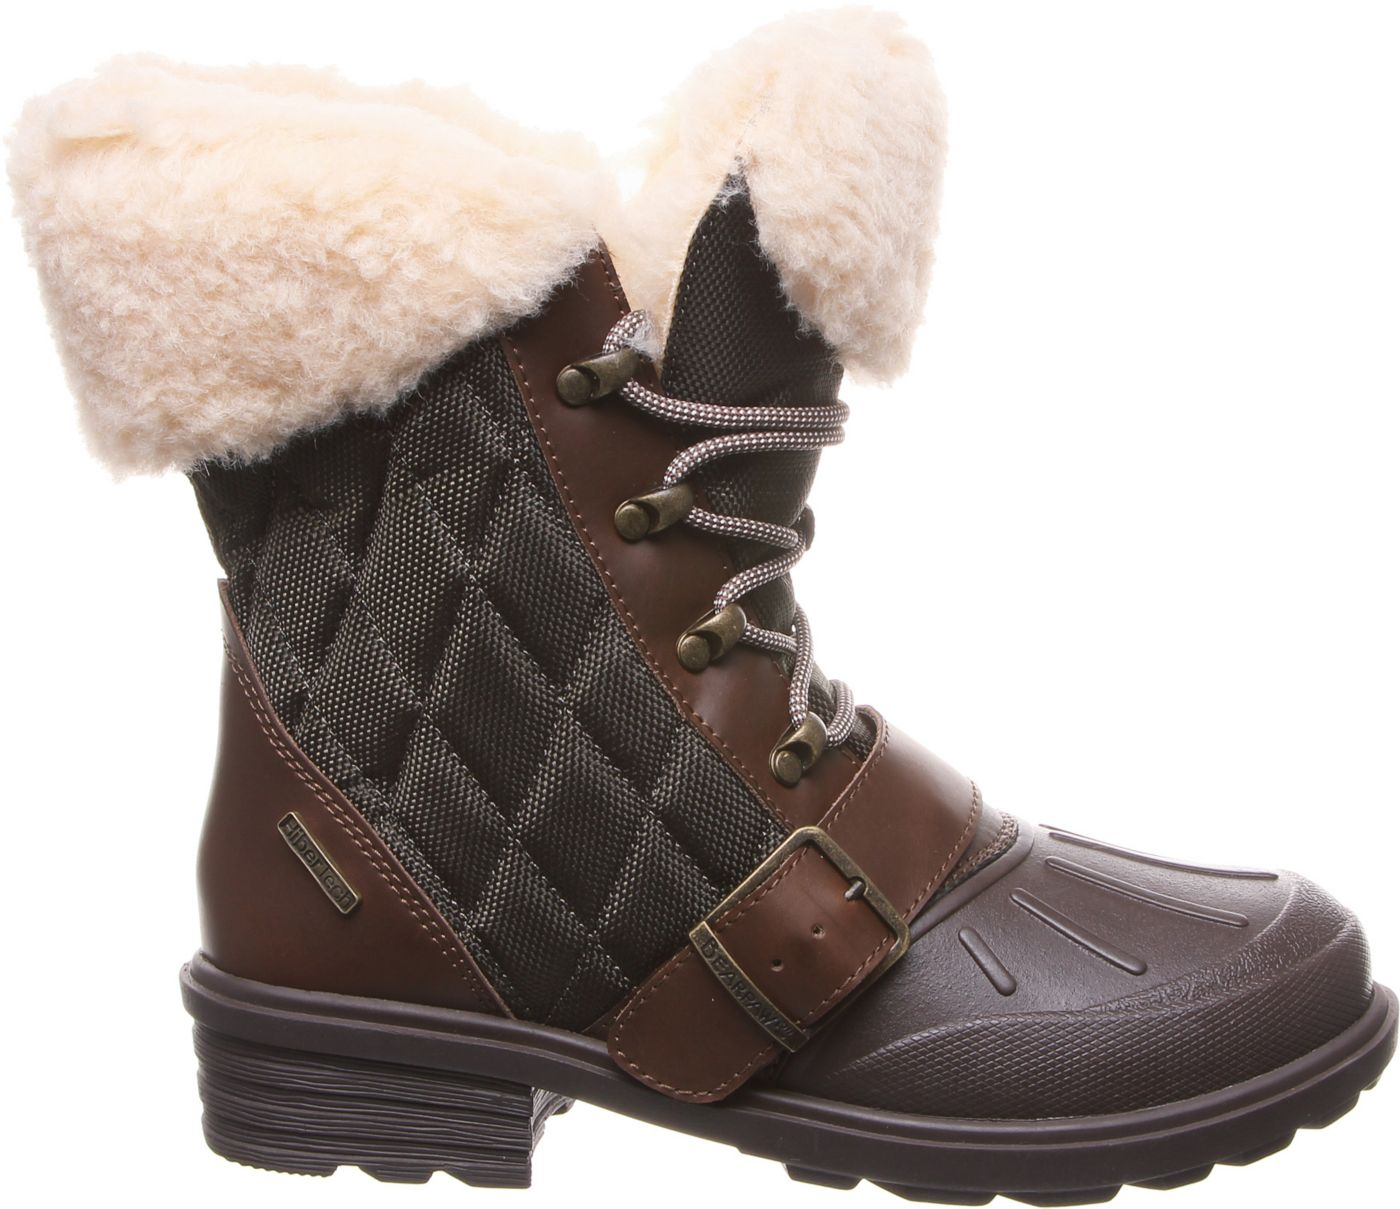 BEARPAW Women's Delta 200g Winter Boots